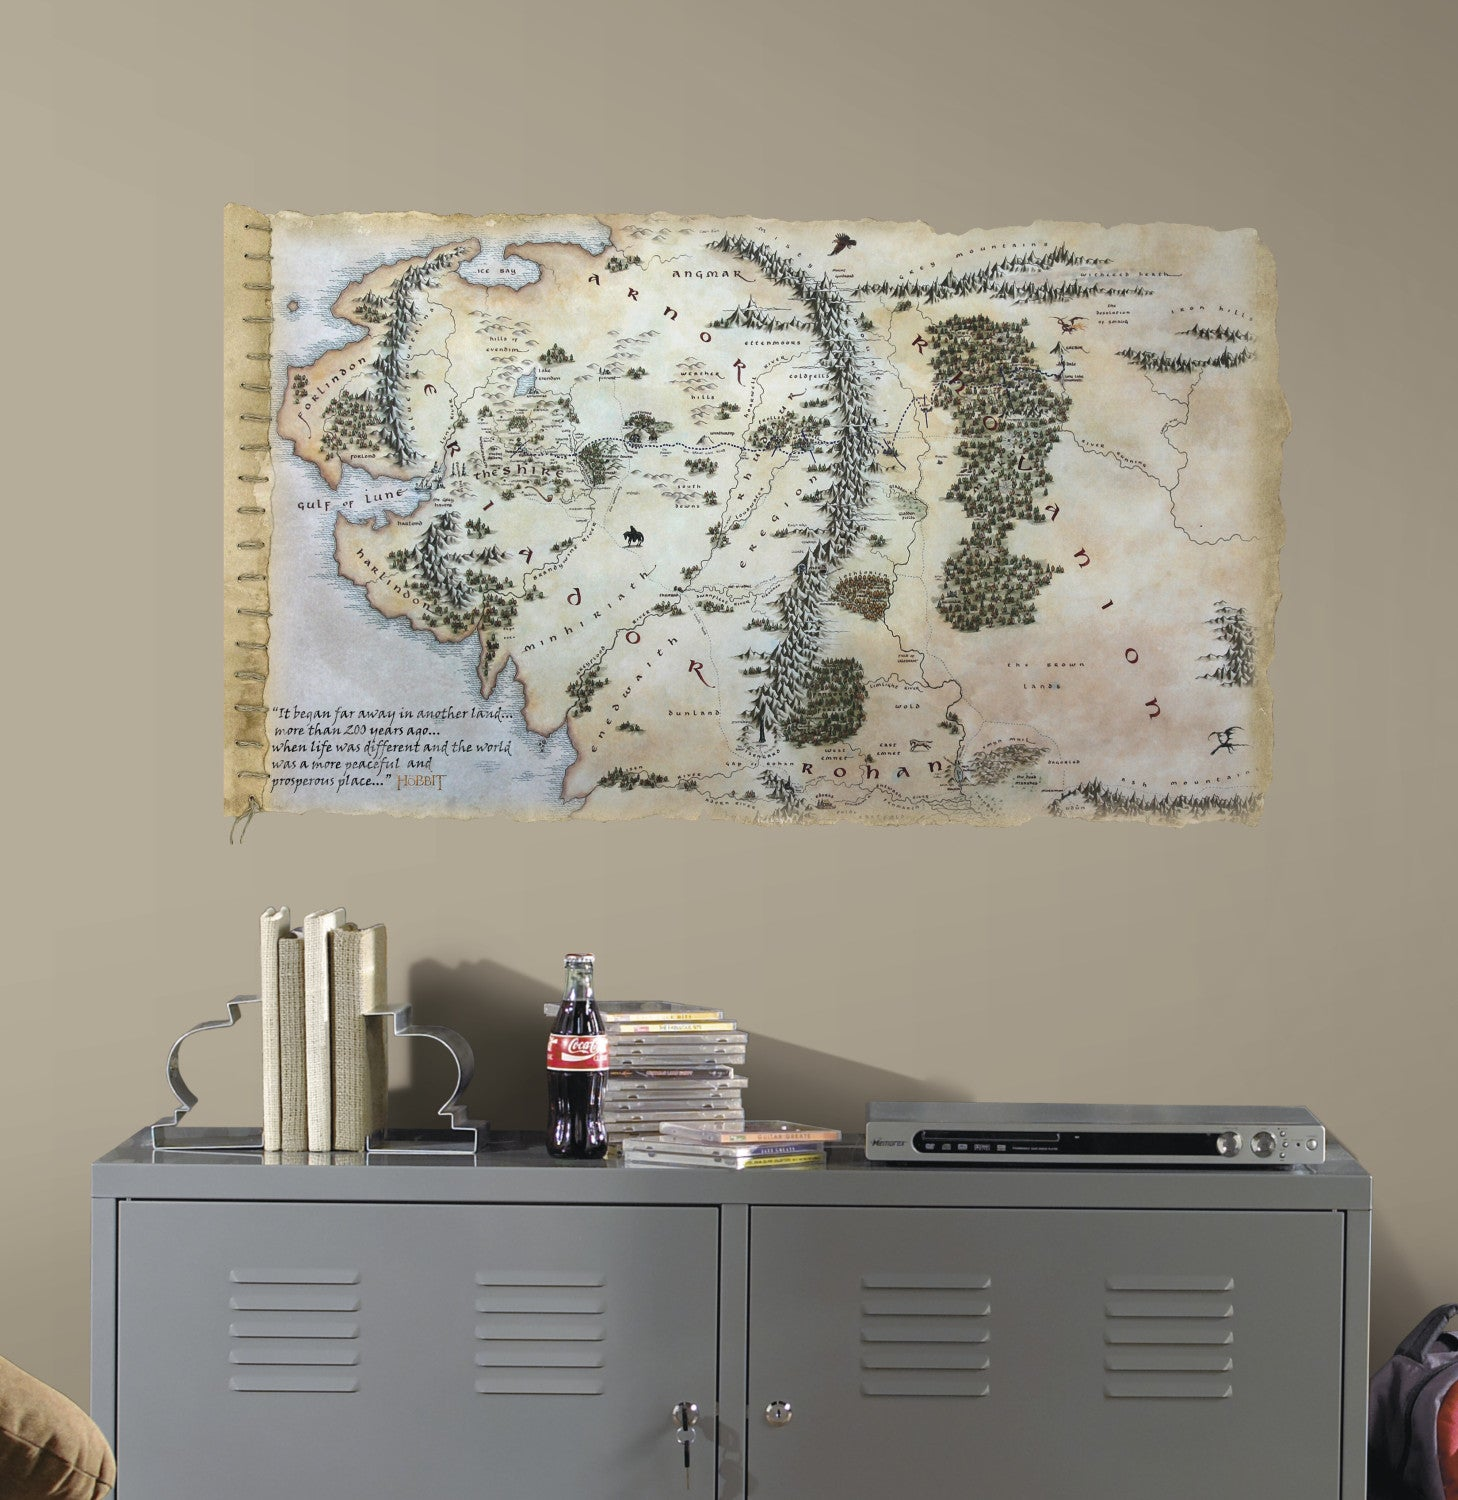 The hobbit middle earth map peel stick giant wall decals the hobbit middle earth map peel stick giant wall decals gumiabroncs Image collections